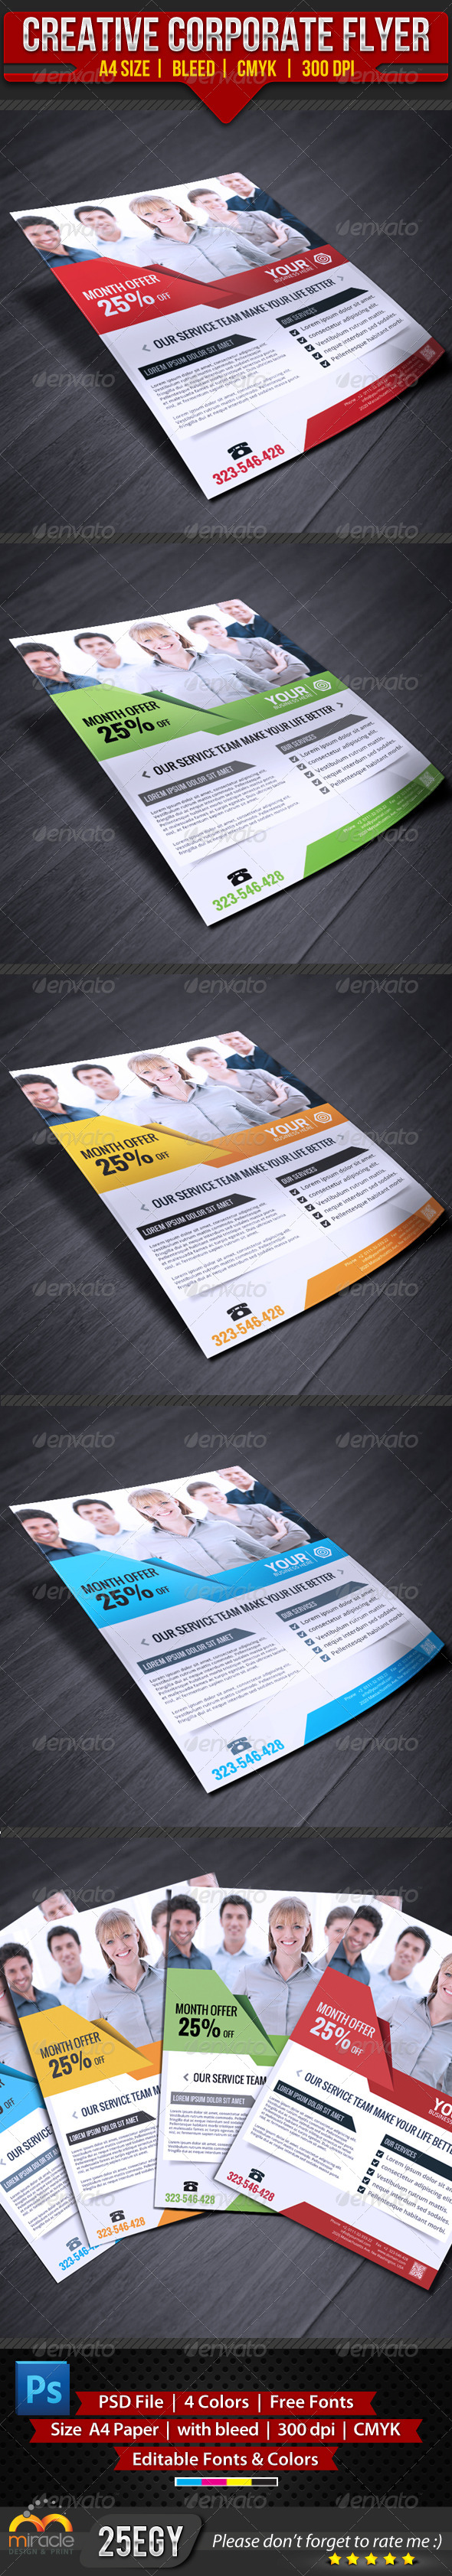 GraphicRiver Creative Corporate Flyer 4297917